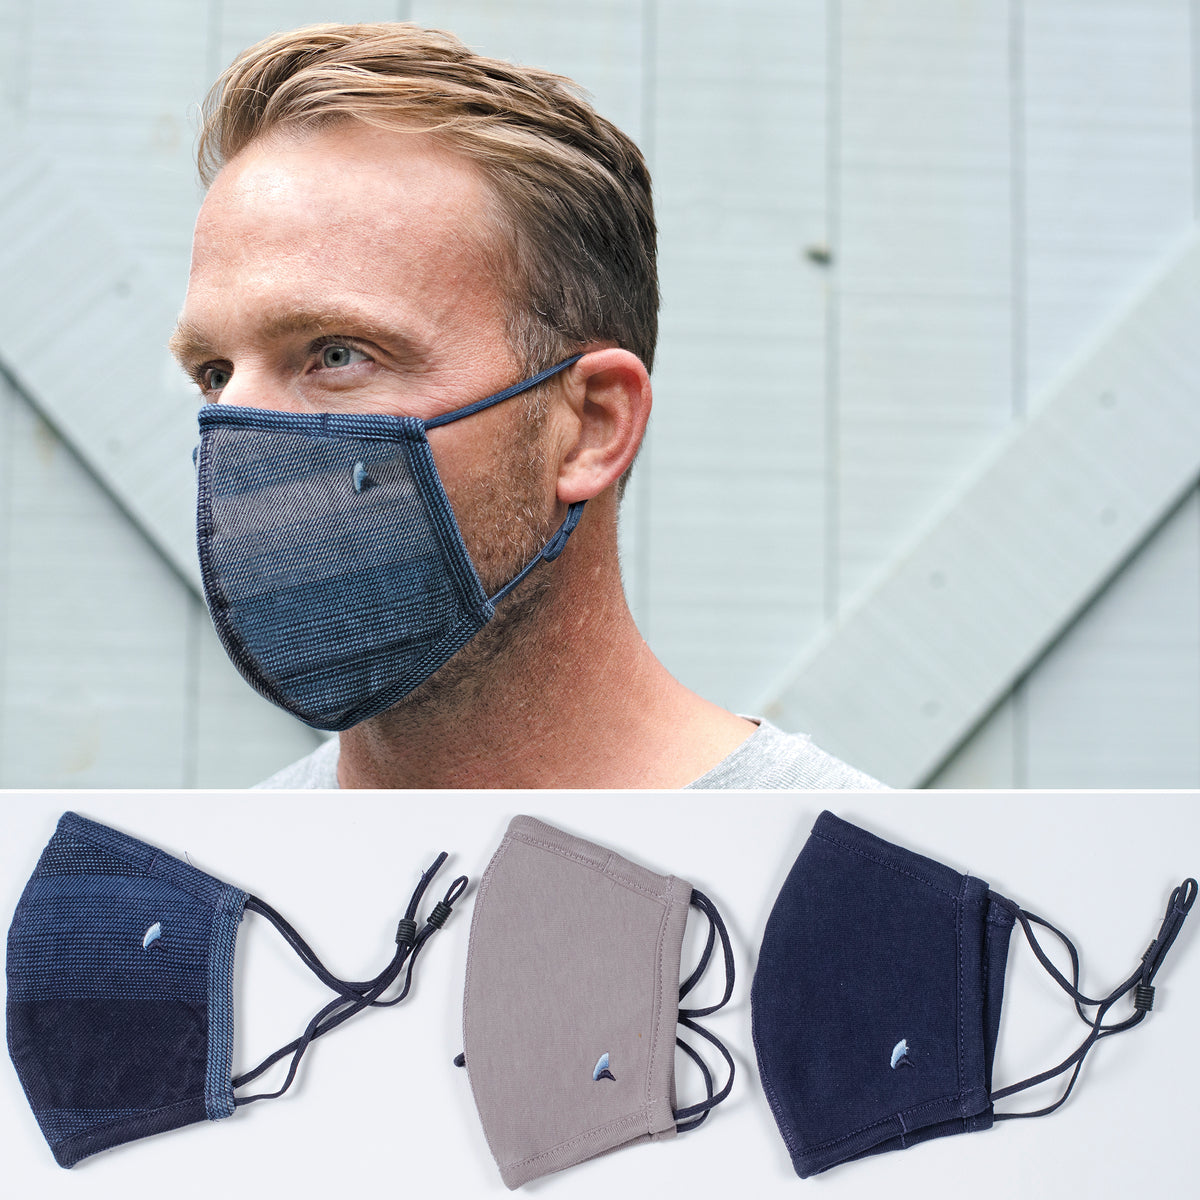 PUREtec cool® 3-Layer High Filtration Mask with Nanofiber Fiber Filter- 3 pack in Indigo Desert Stripe/Navy/Gray